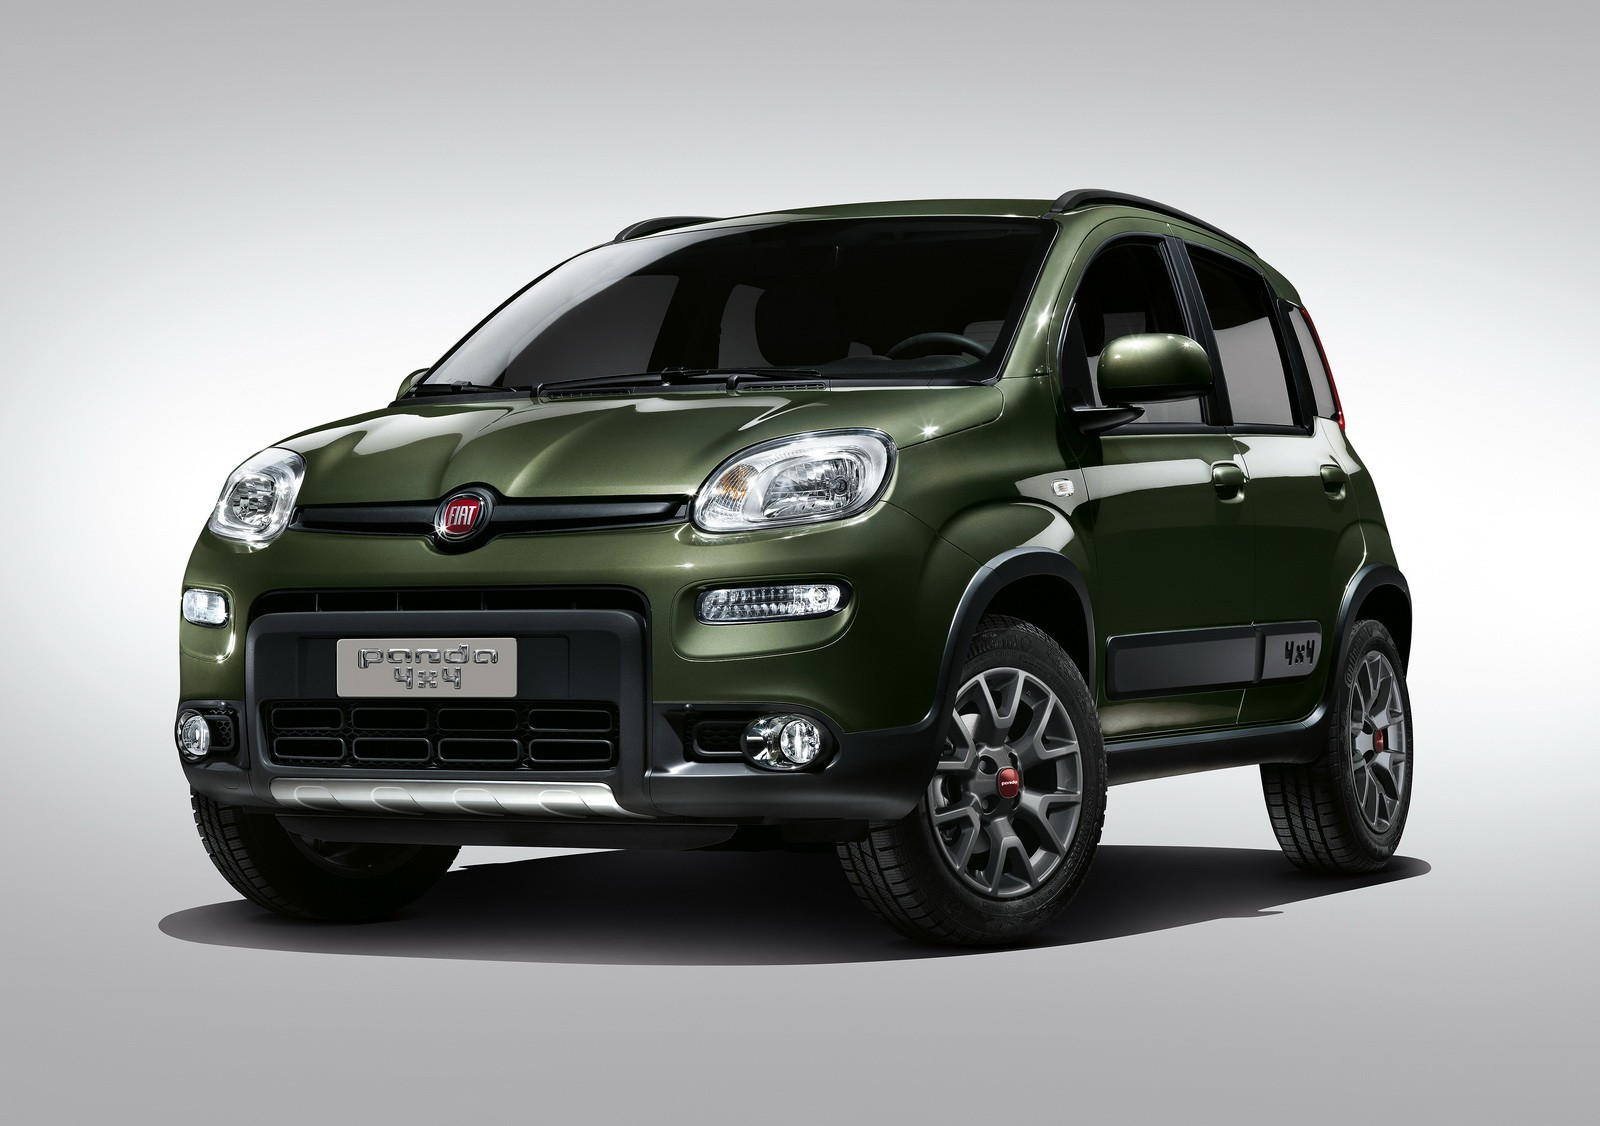 2017 Fiat Panda Gets Small Updates And Uconnect